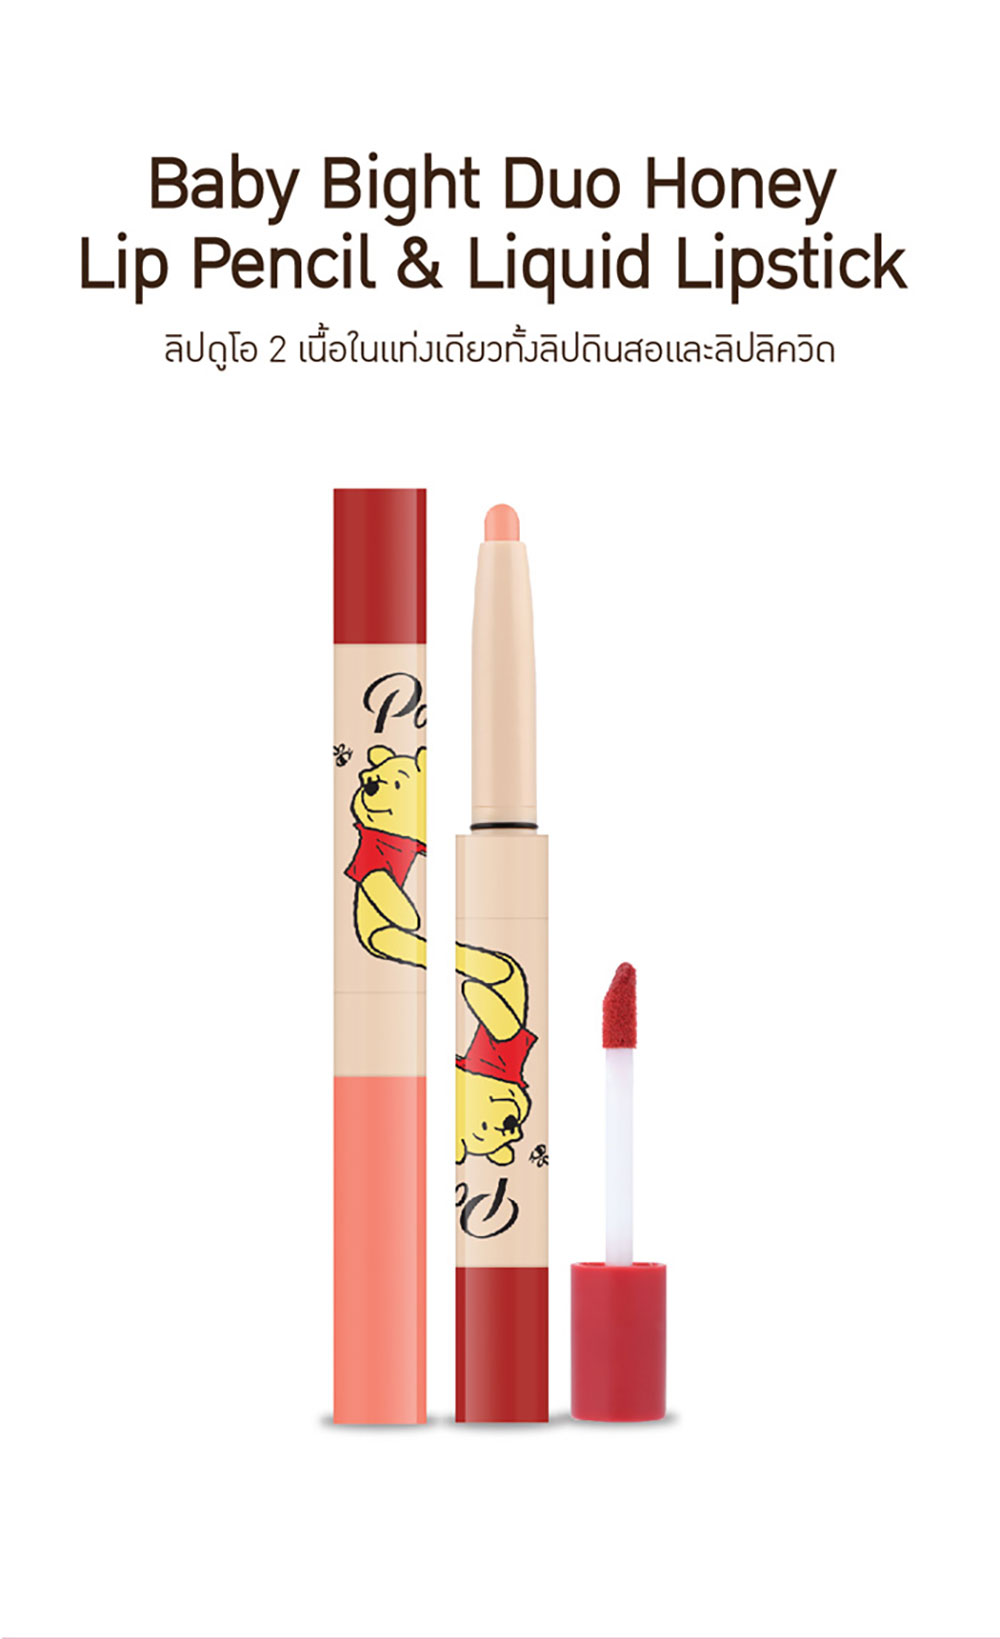 Baby Bright Disney Winnie the Pooh Duo Honey Lip Pencil & Liquid Lipstick (0.5g + 2.5g) #01 Morning Kiss_2